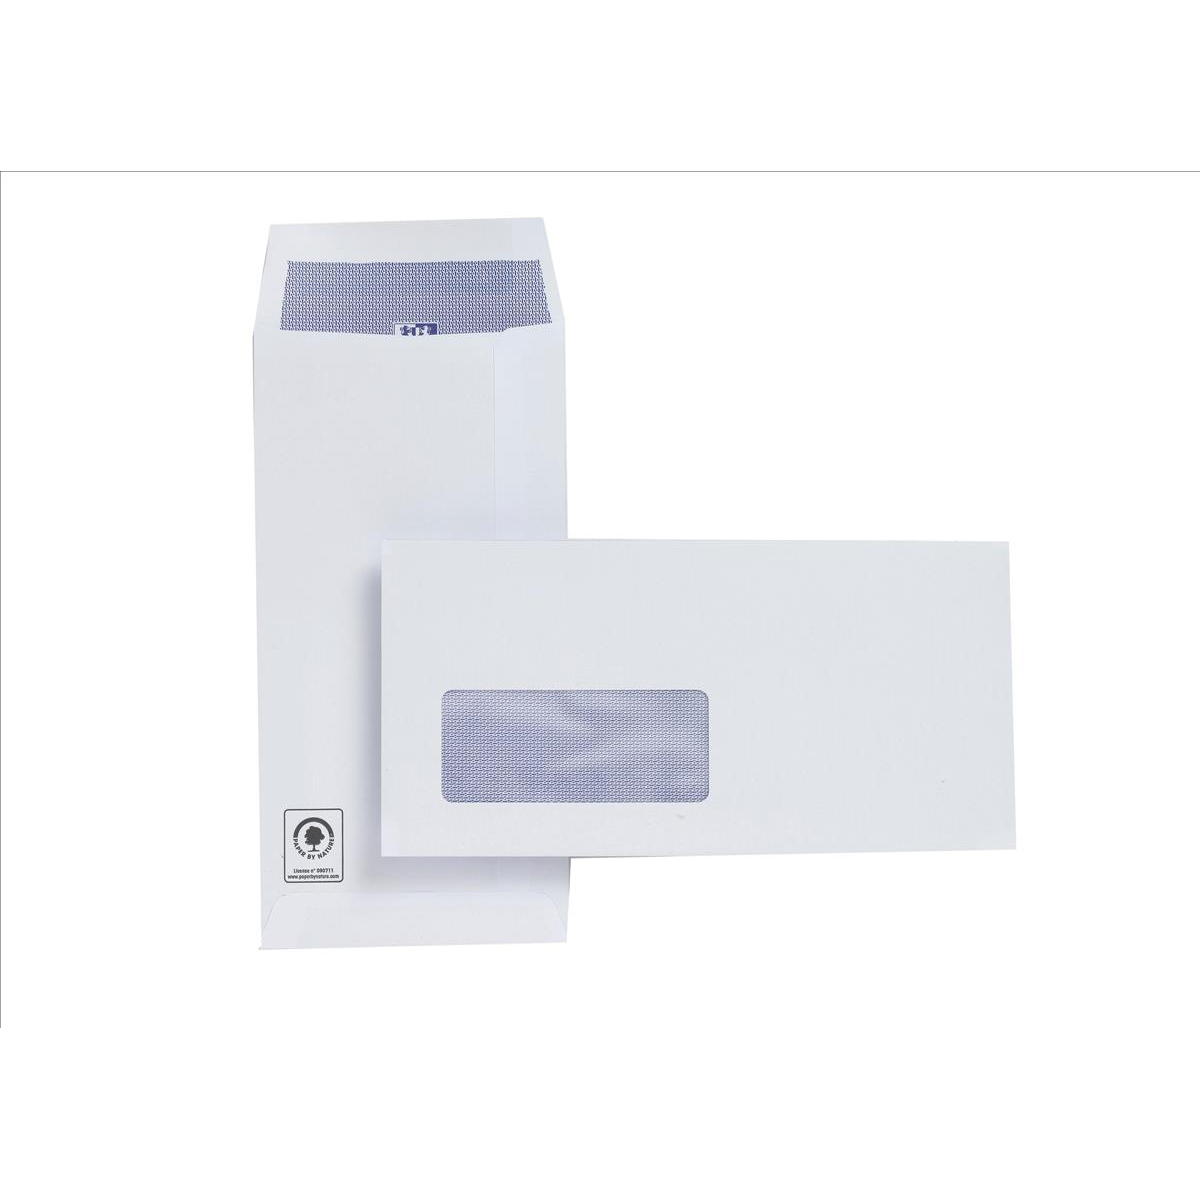 Plus Fabric Envelopes PEFC Pocket Self Seal Window 120gsm DL 220x110mm White Ref J26670 Pack 500